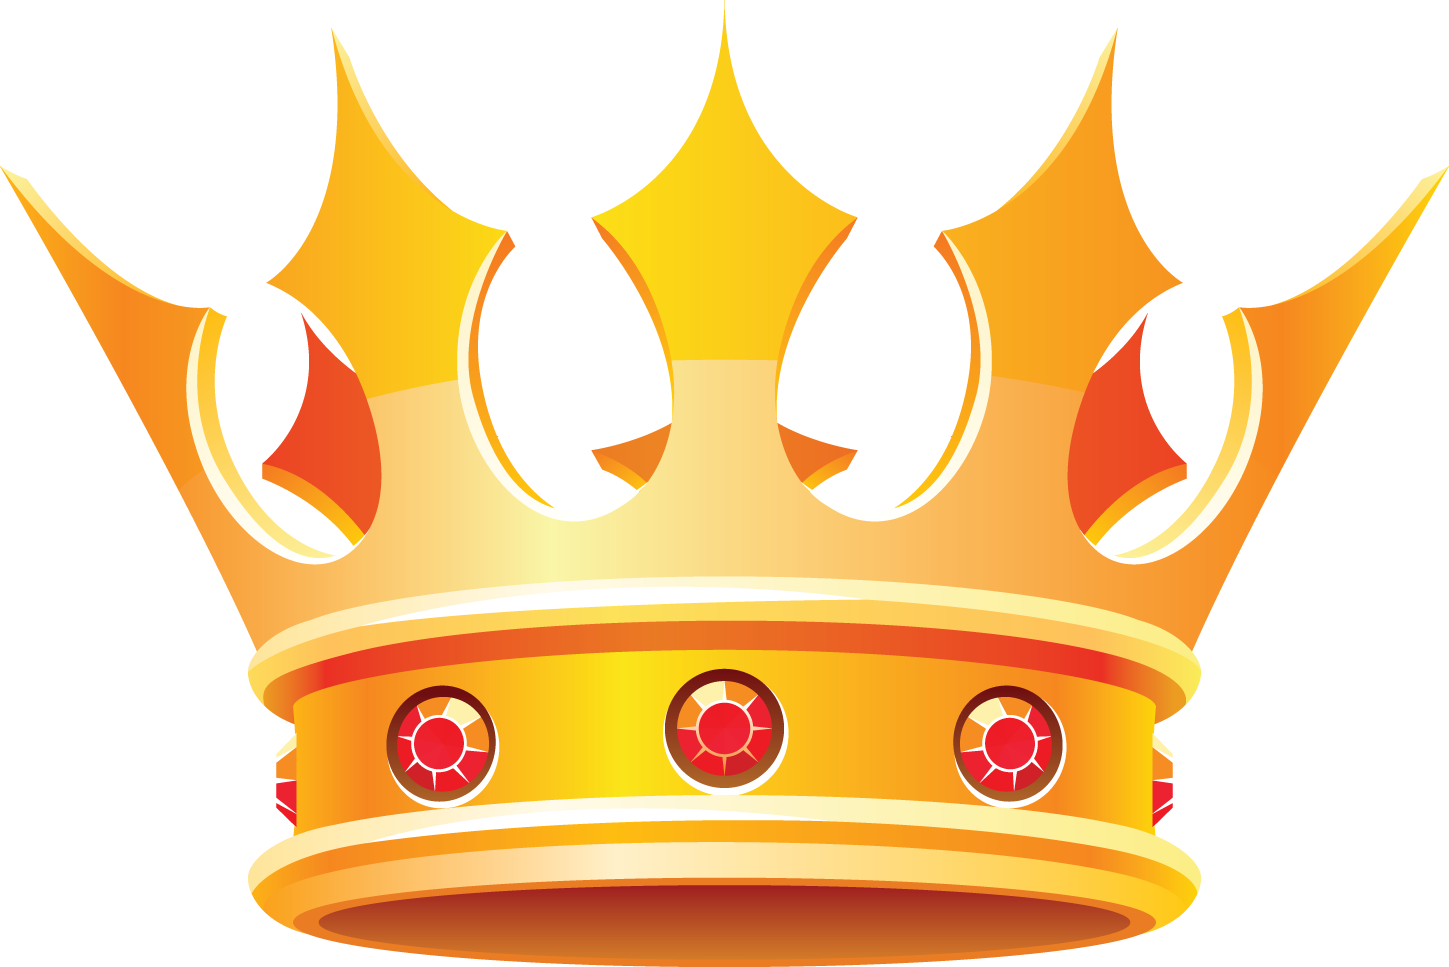 Queen at getdrawings com. Crown clipart free